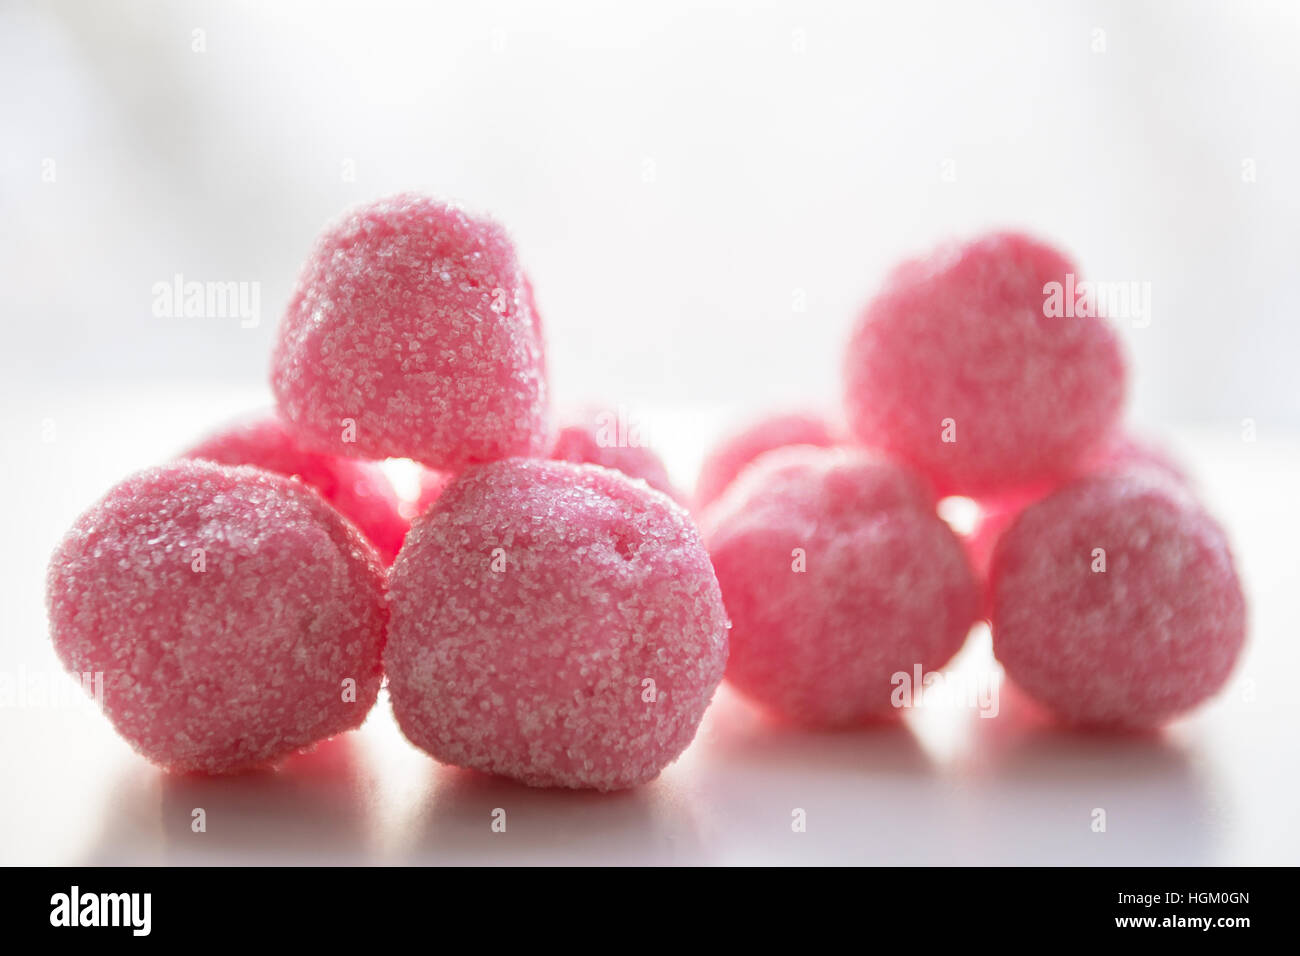 Set for bath bombs. Beauty products for body care. Photo closeup - Stock Image